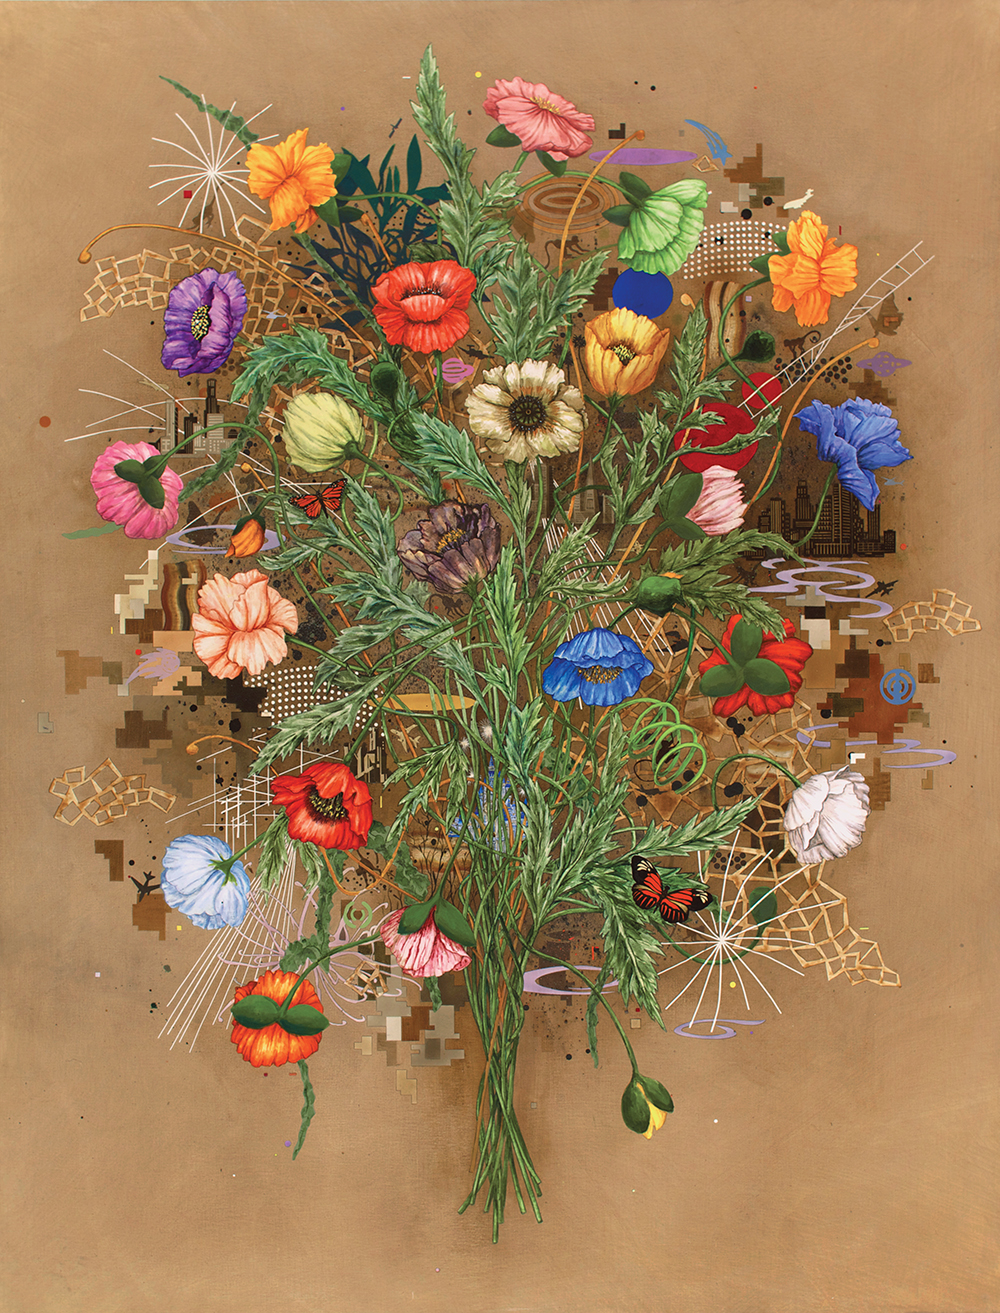 Roland Reiss, Fleurs de Mal #2, 2008, water media on canvas, 68 x 52 inches (© R